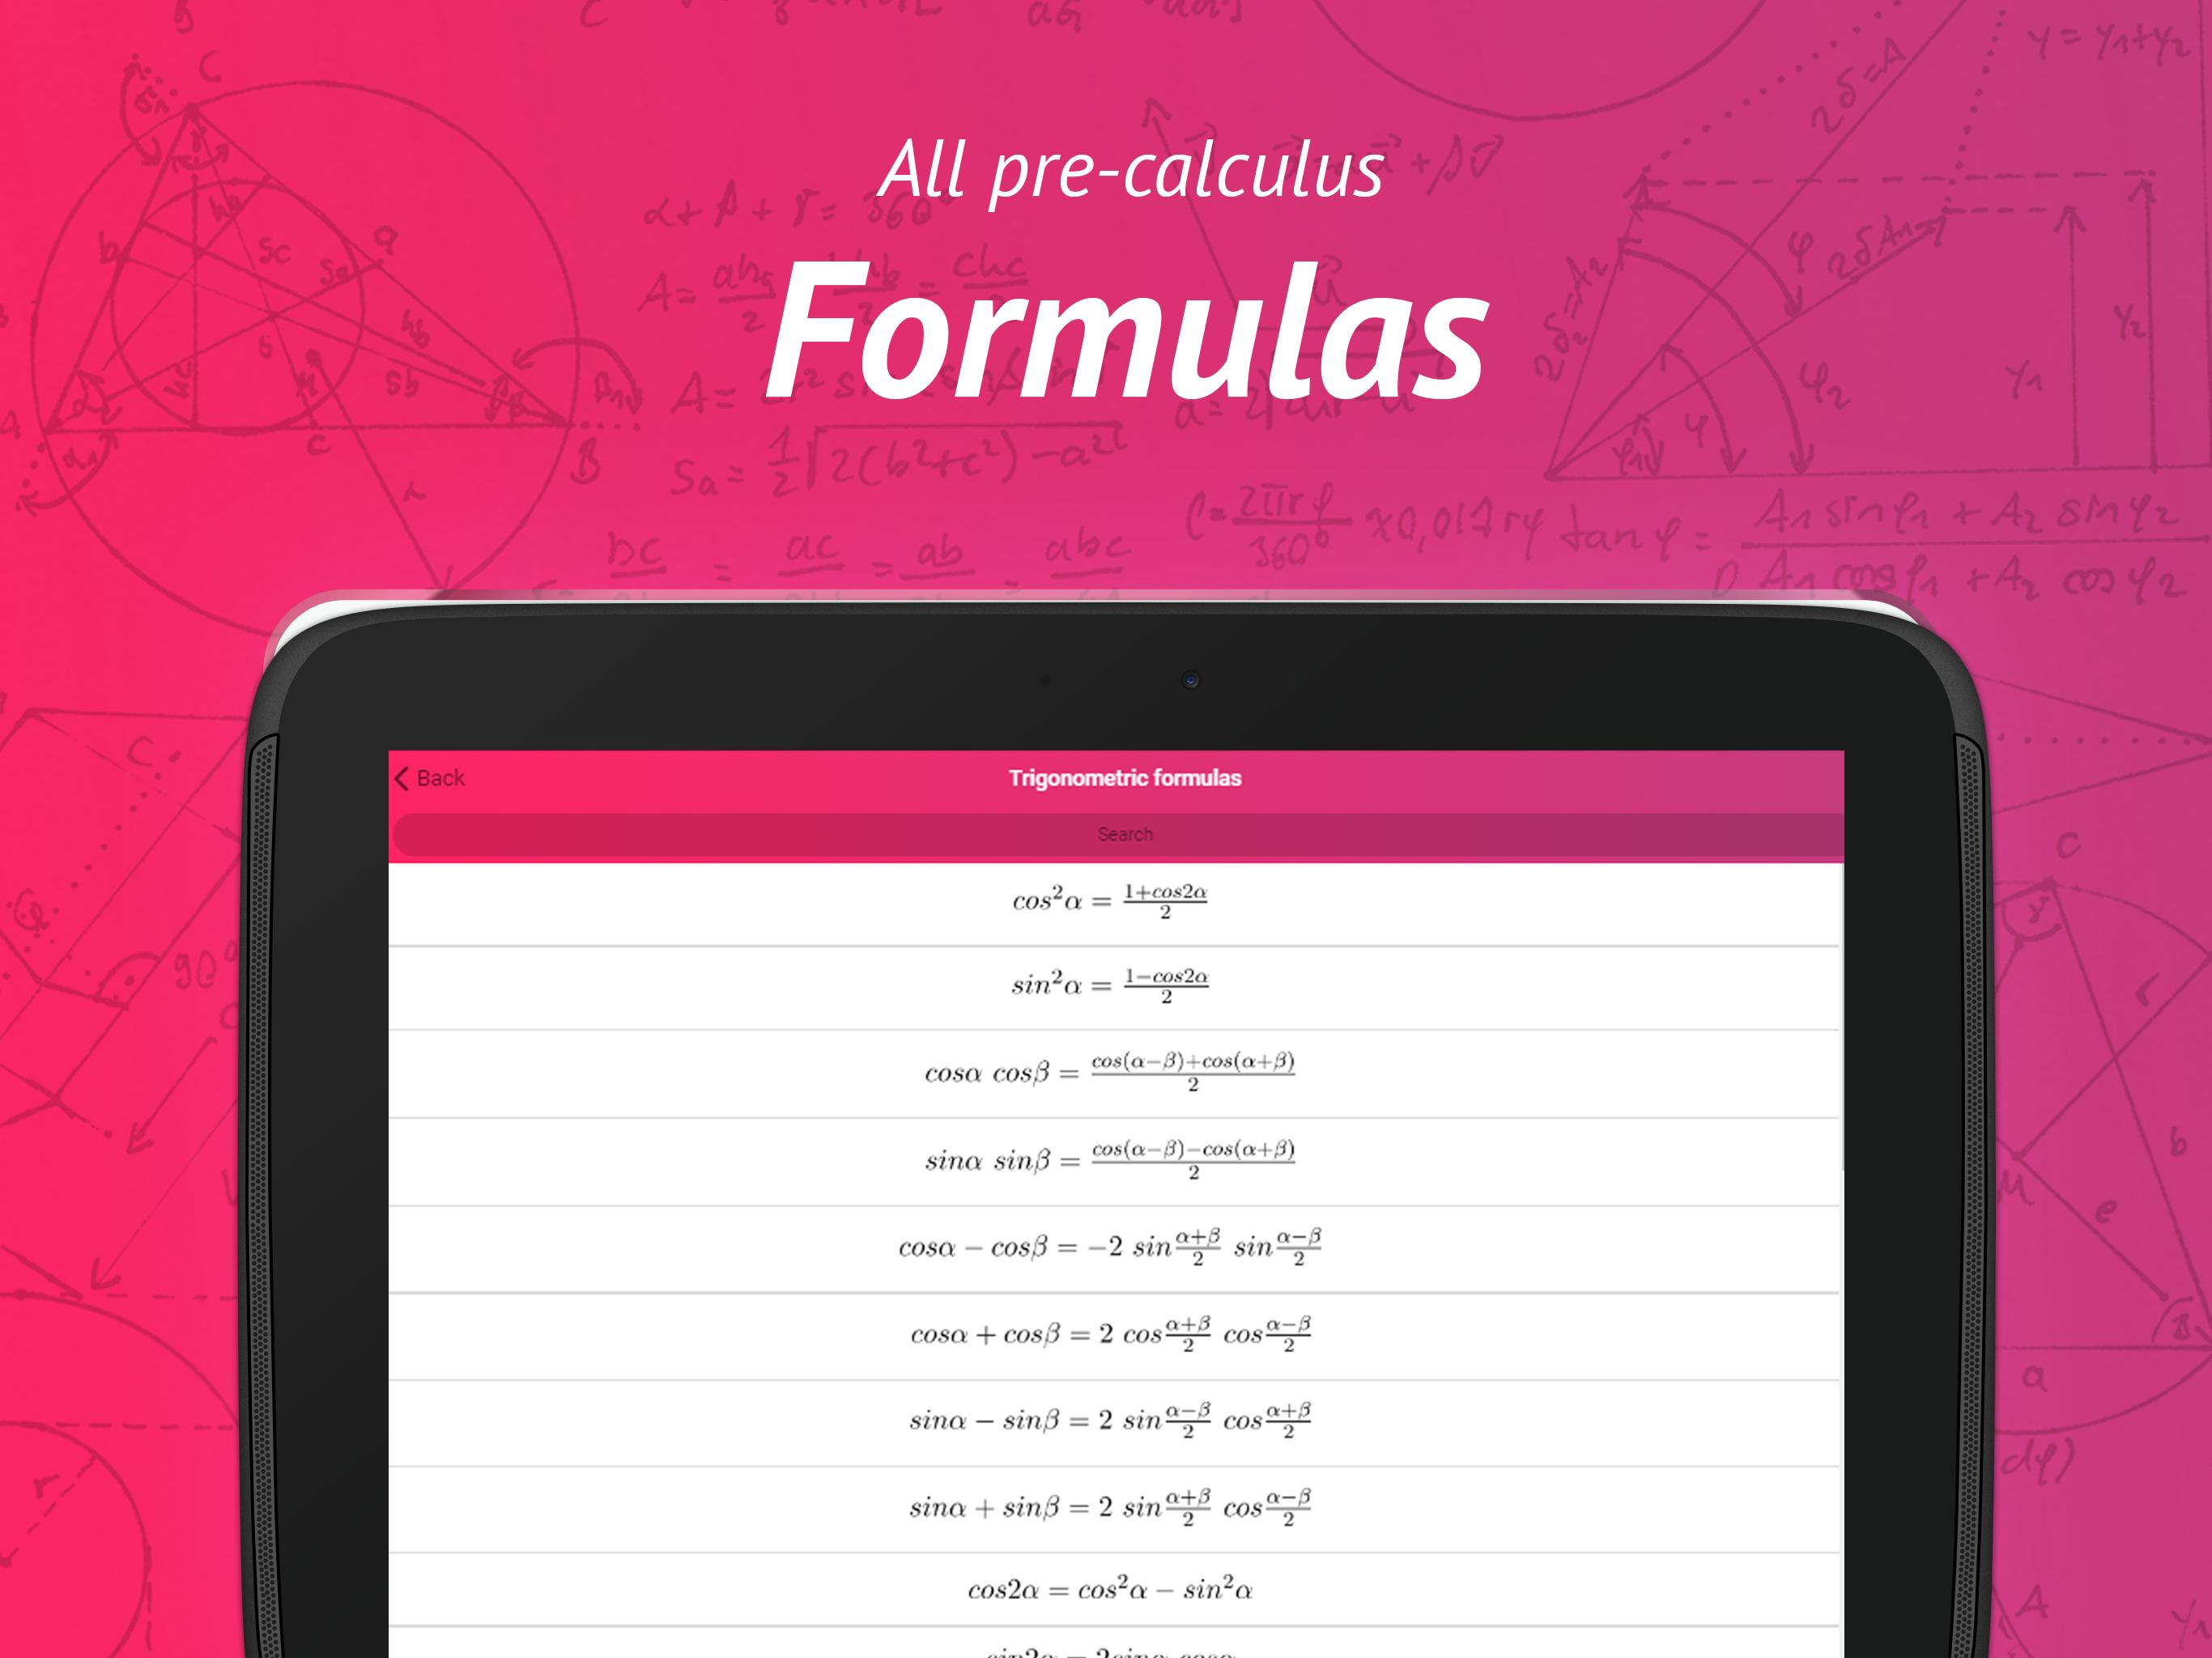 Precalculus: Formulas & Videos for Android - APK Download